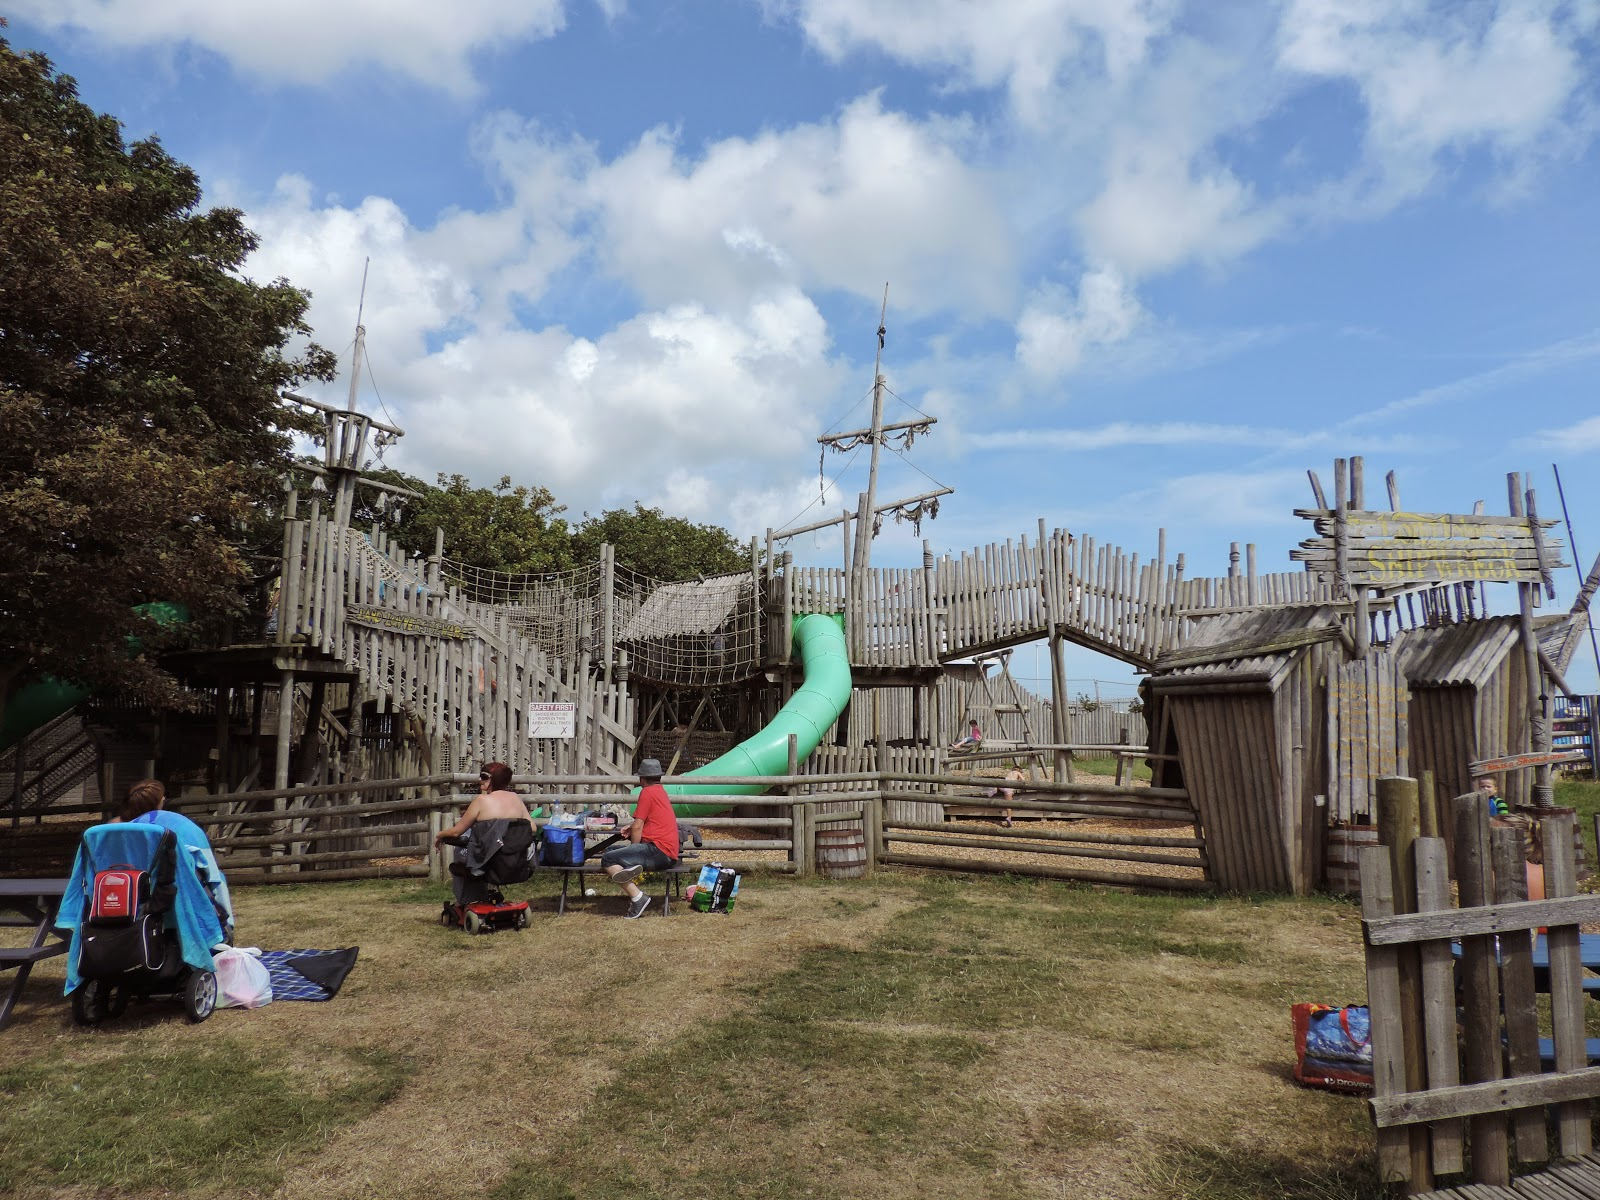 royal parade eastbourse sussex outdoor wooden pirate ship play area